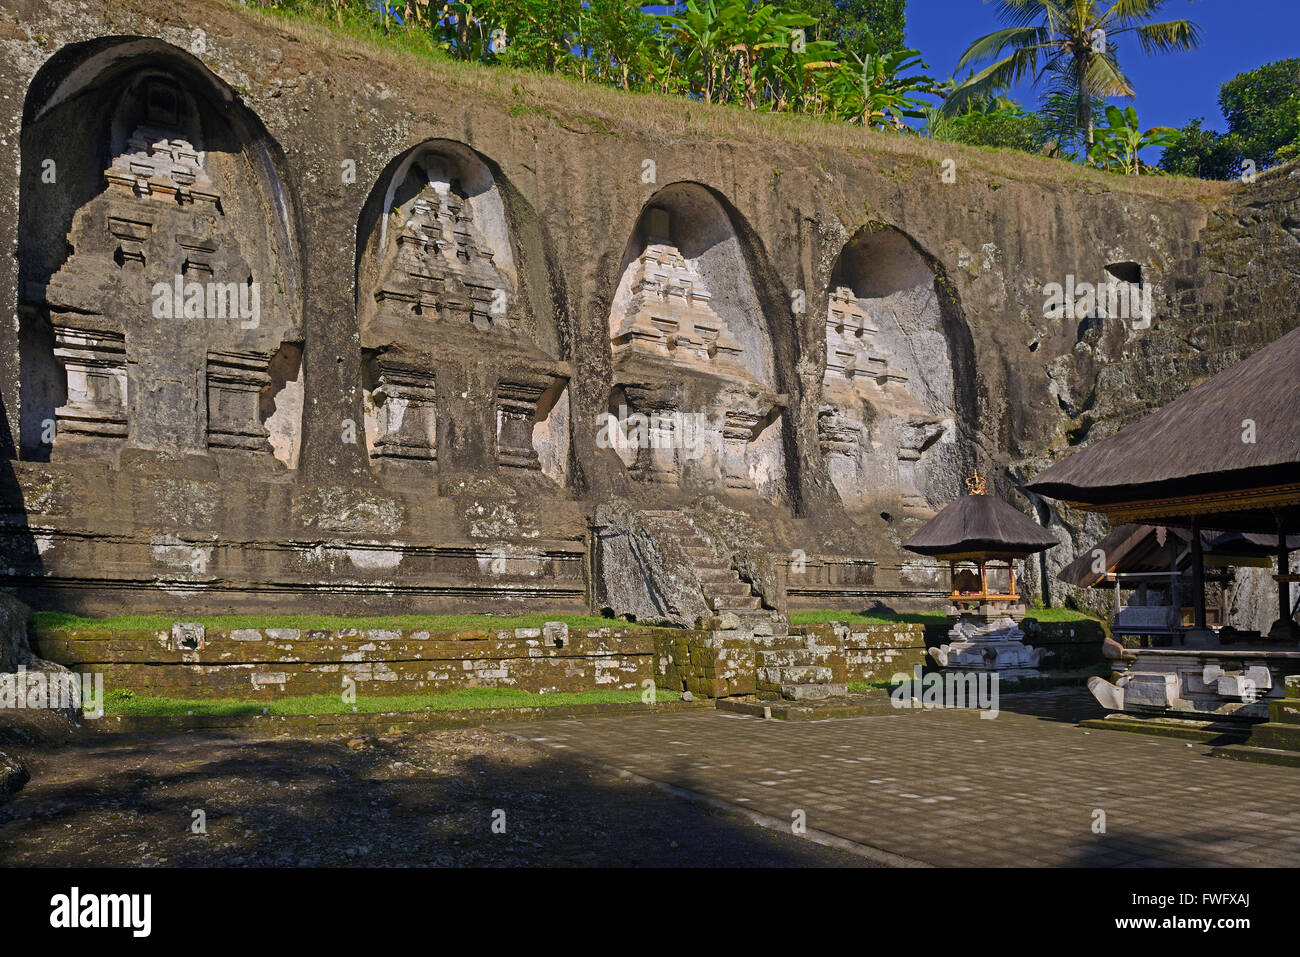 Shrines, Spring temple Pura Gunung Kawi, Bali, Indonesia - Stock Image